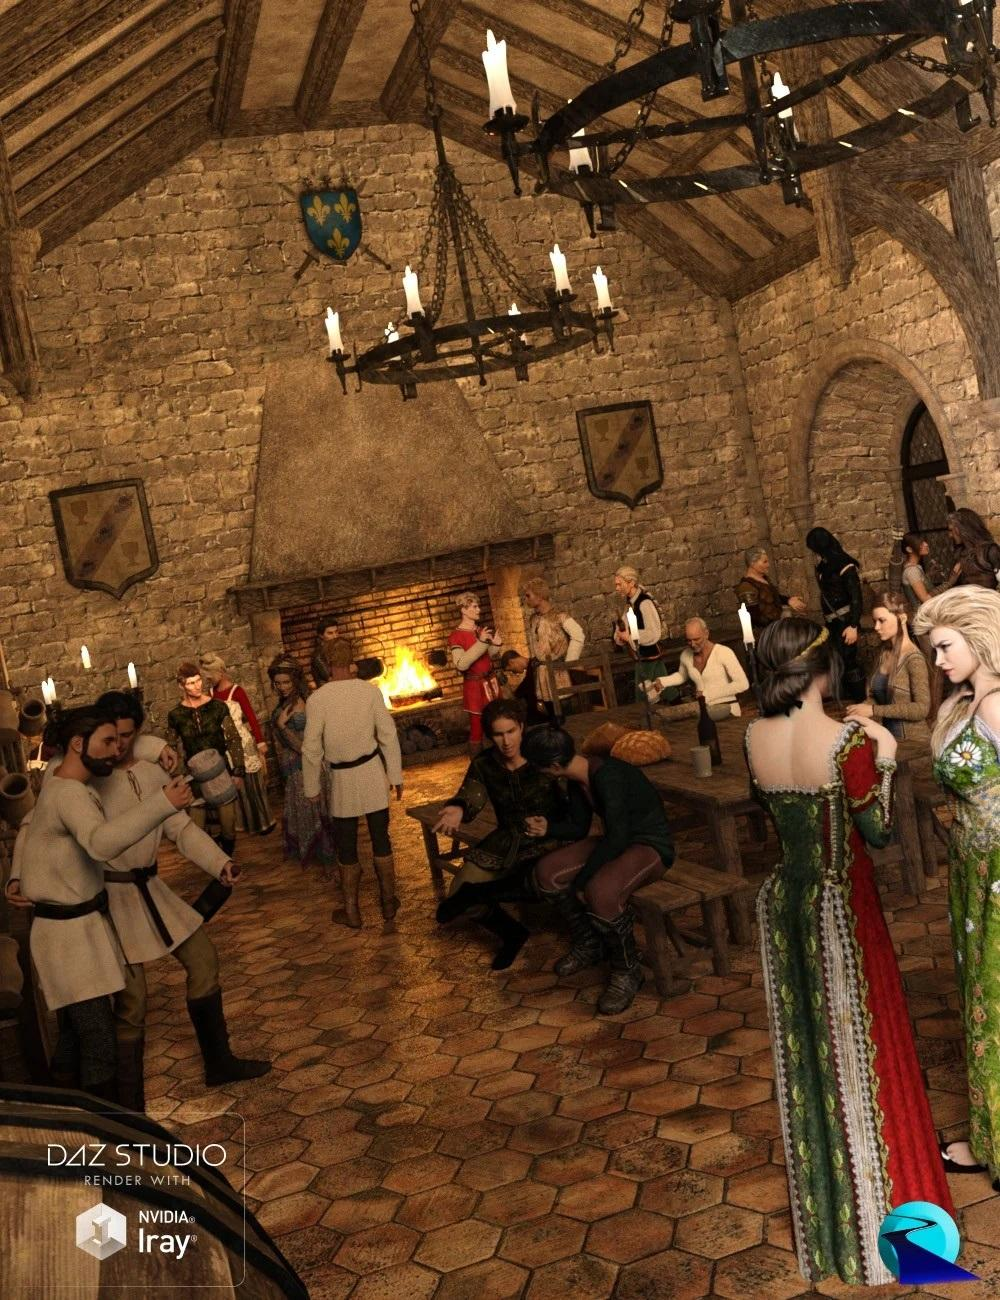 Now-Crowd Billboards - Medieval City Life